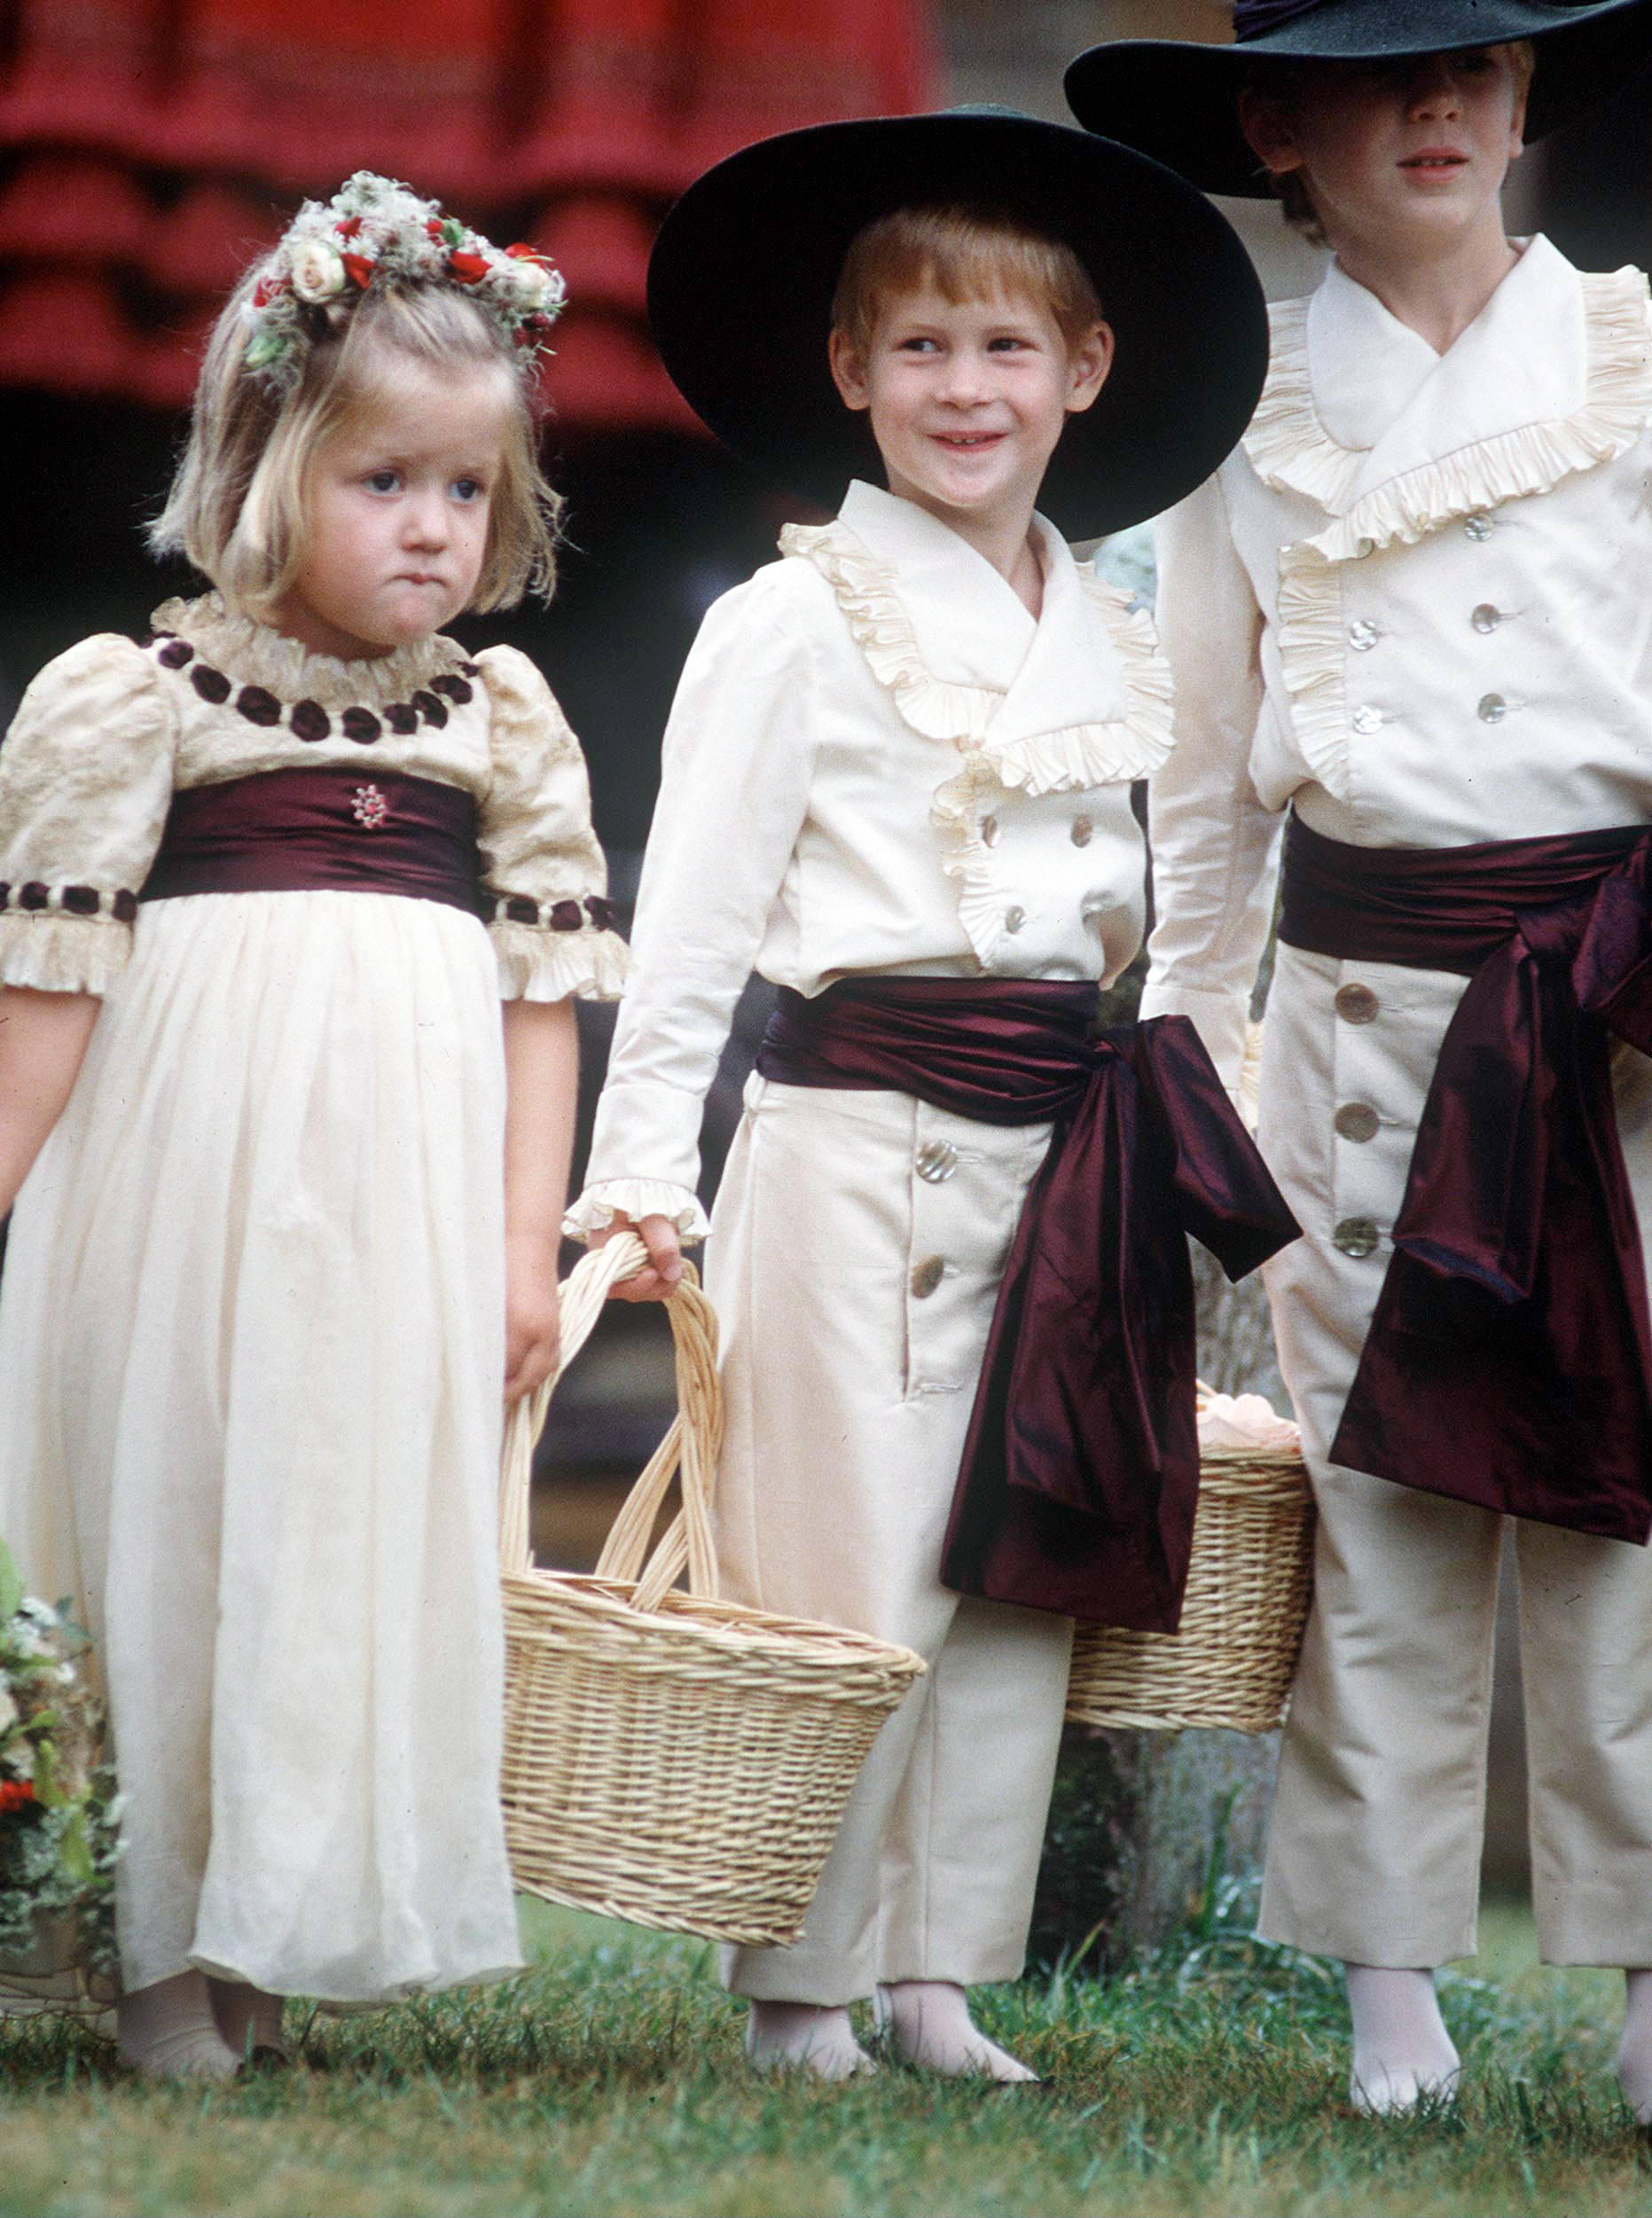 Prince Harry as a pageboy at his Uncle's wedding with his cousins Eleanor and Alexander Fellowes. 1989.